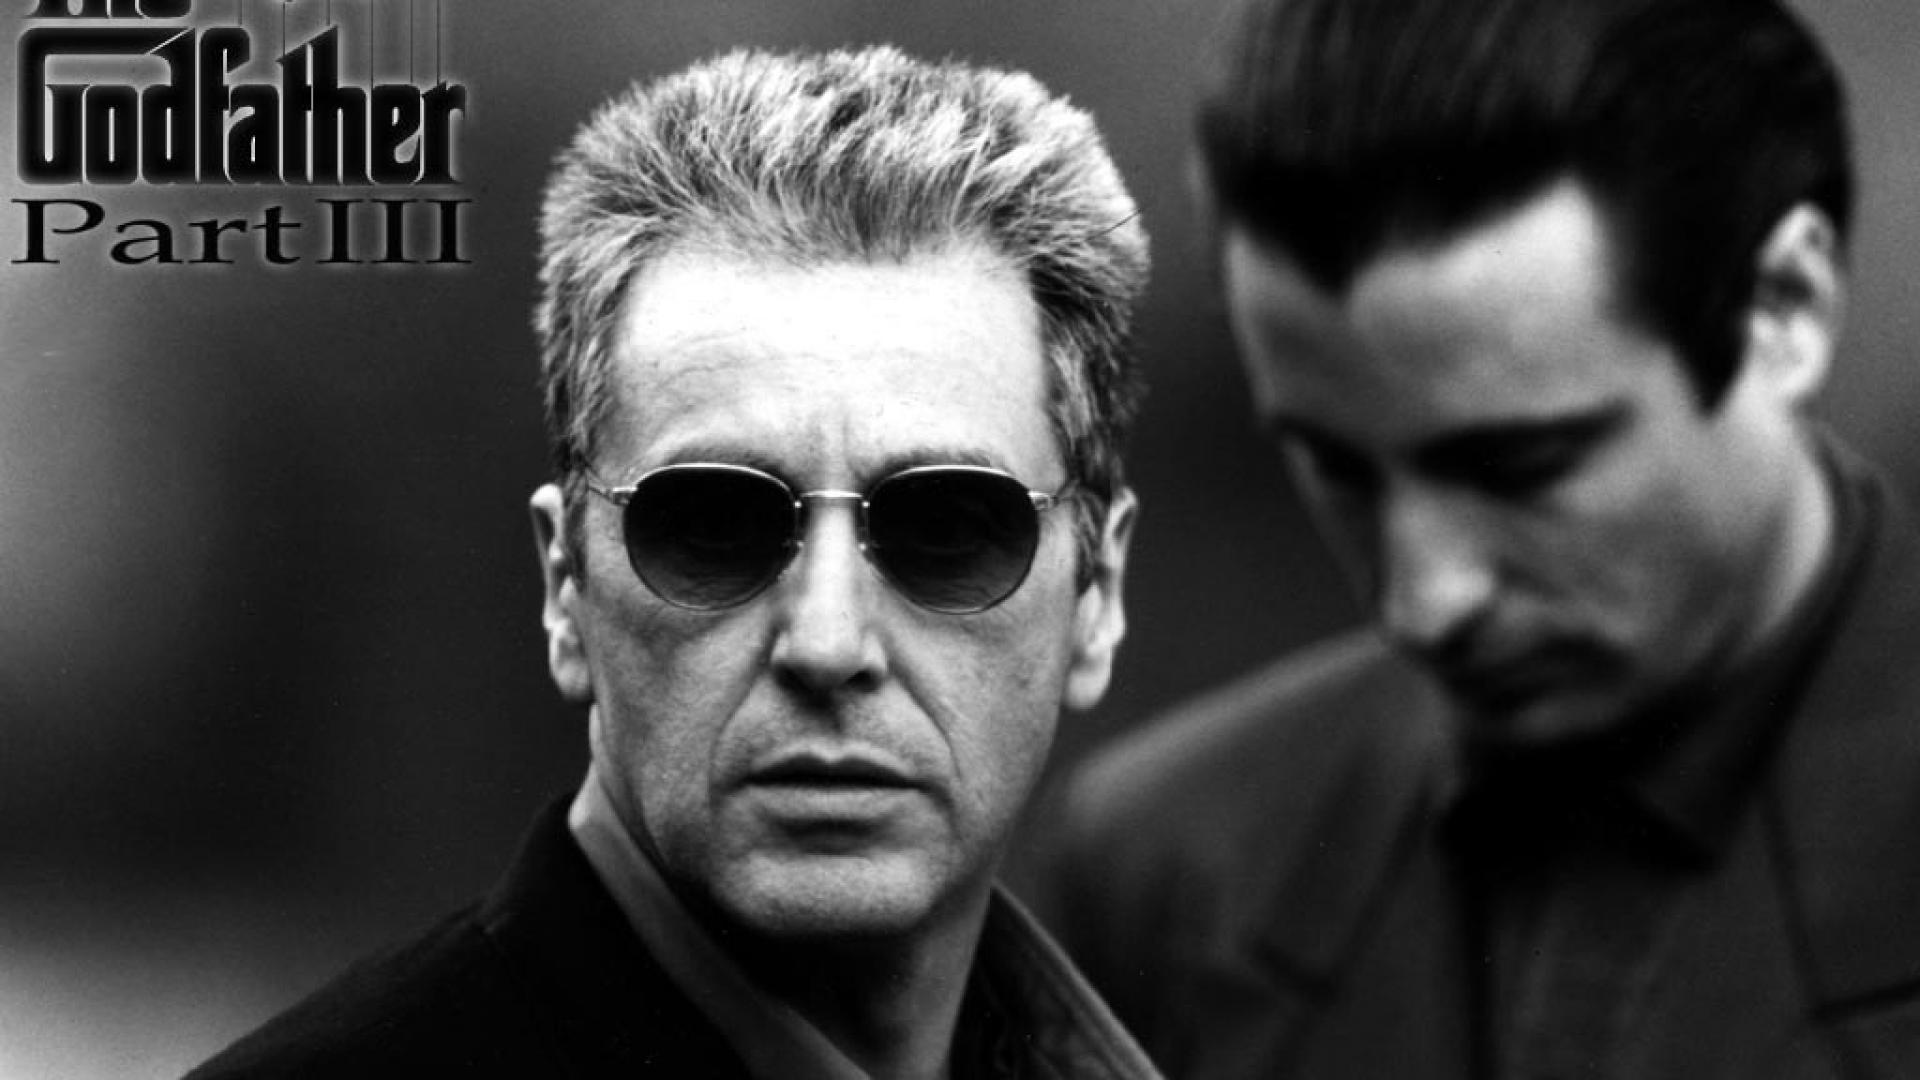 Al pacino andy garcia godfather: part iii wallpapers